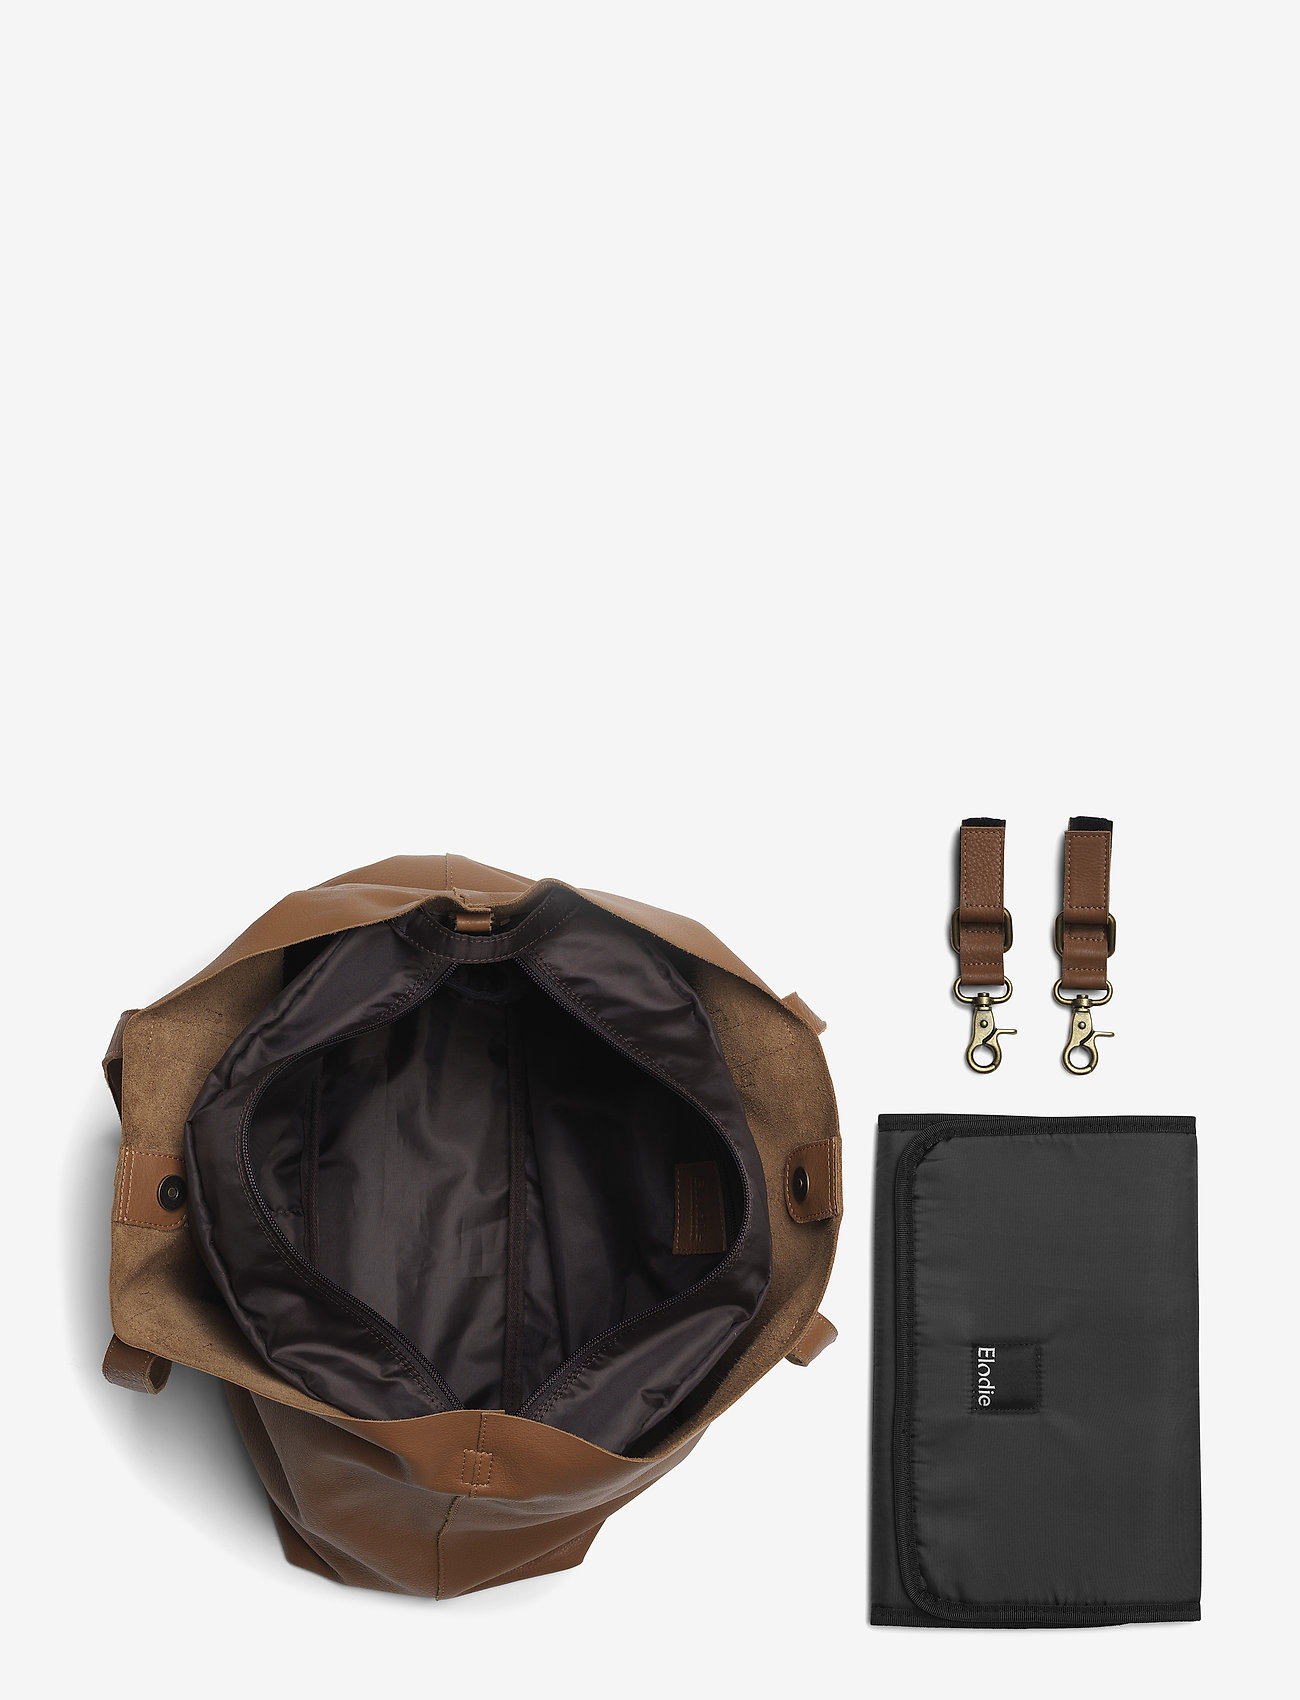 ChangingBag - Chestnut Leather (Brown) (259 €) - Elodie Details toAoT